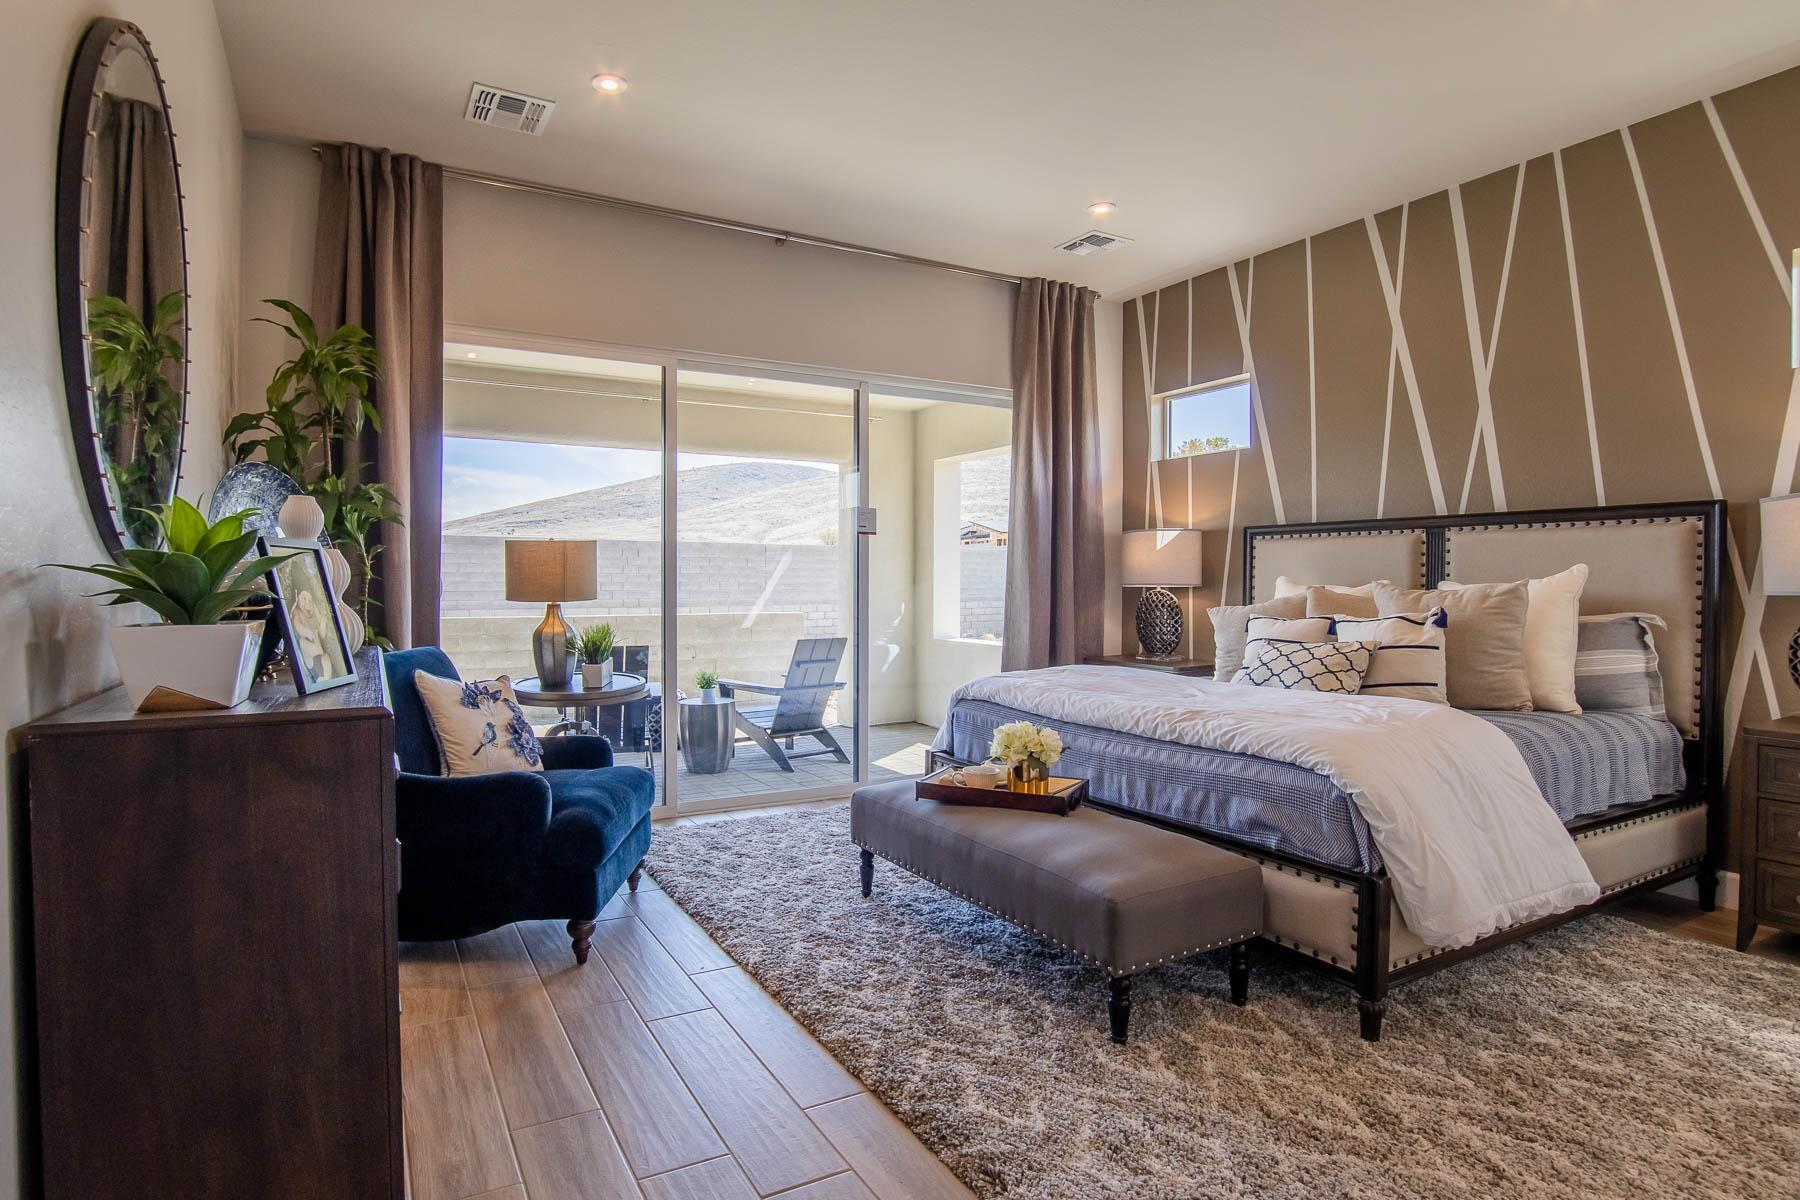 Bedroom featured in the J706 By Mandalay Homes in Prescott, AZ